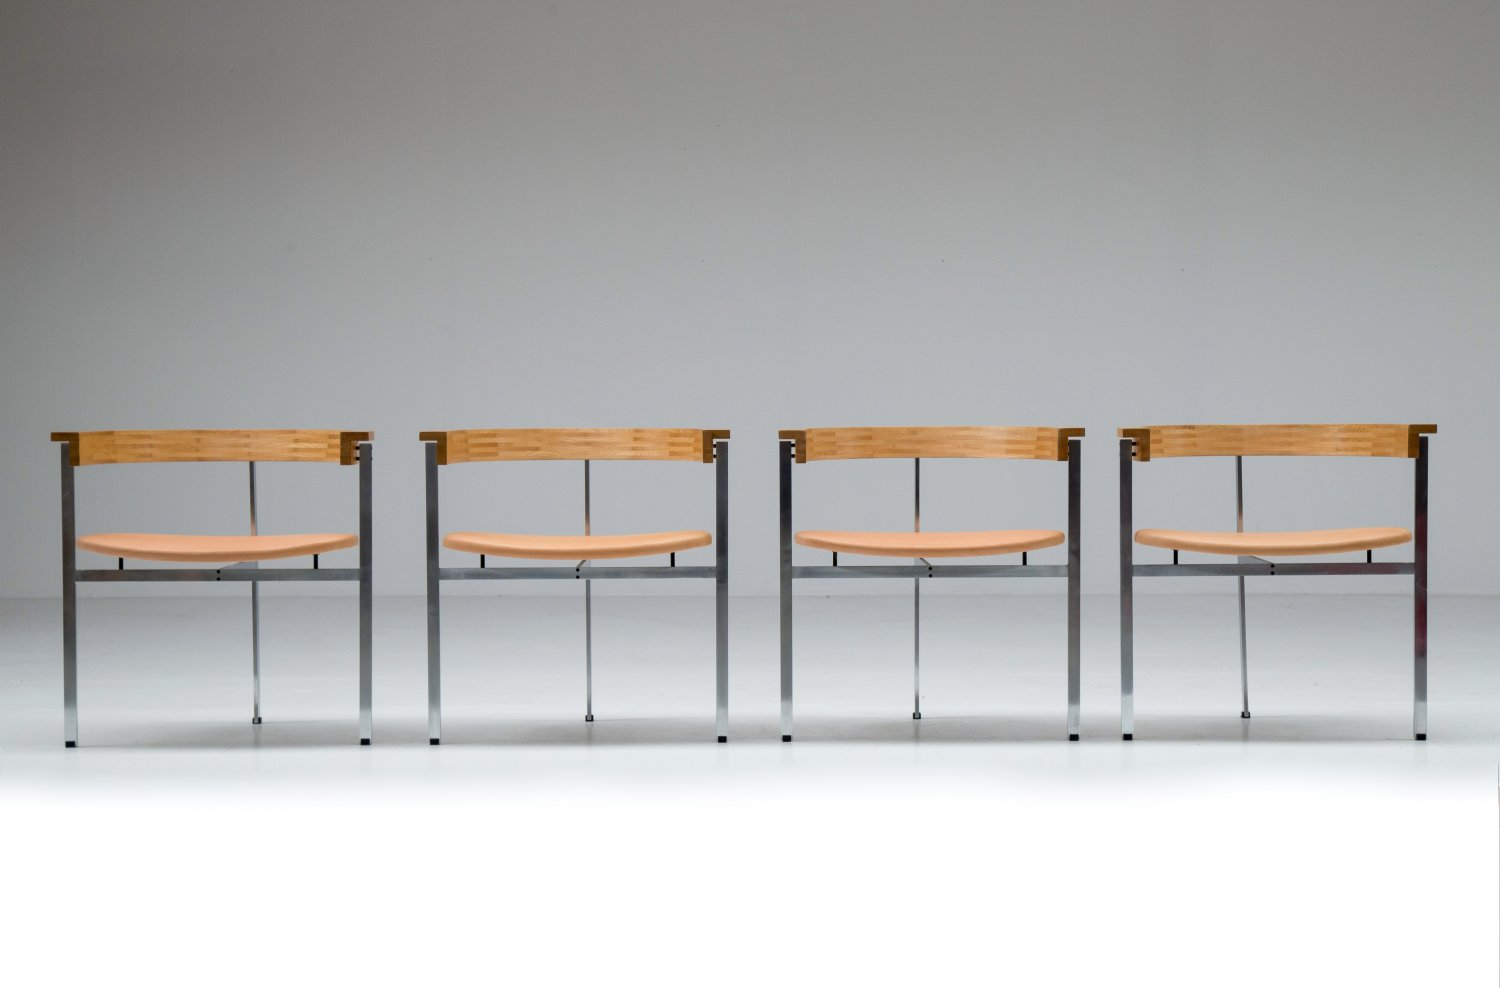 Set of 4 PK11 chairs by Poul Kjaerholm